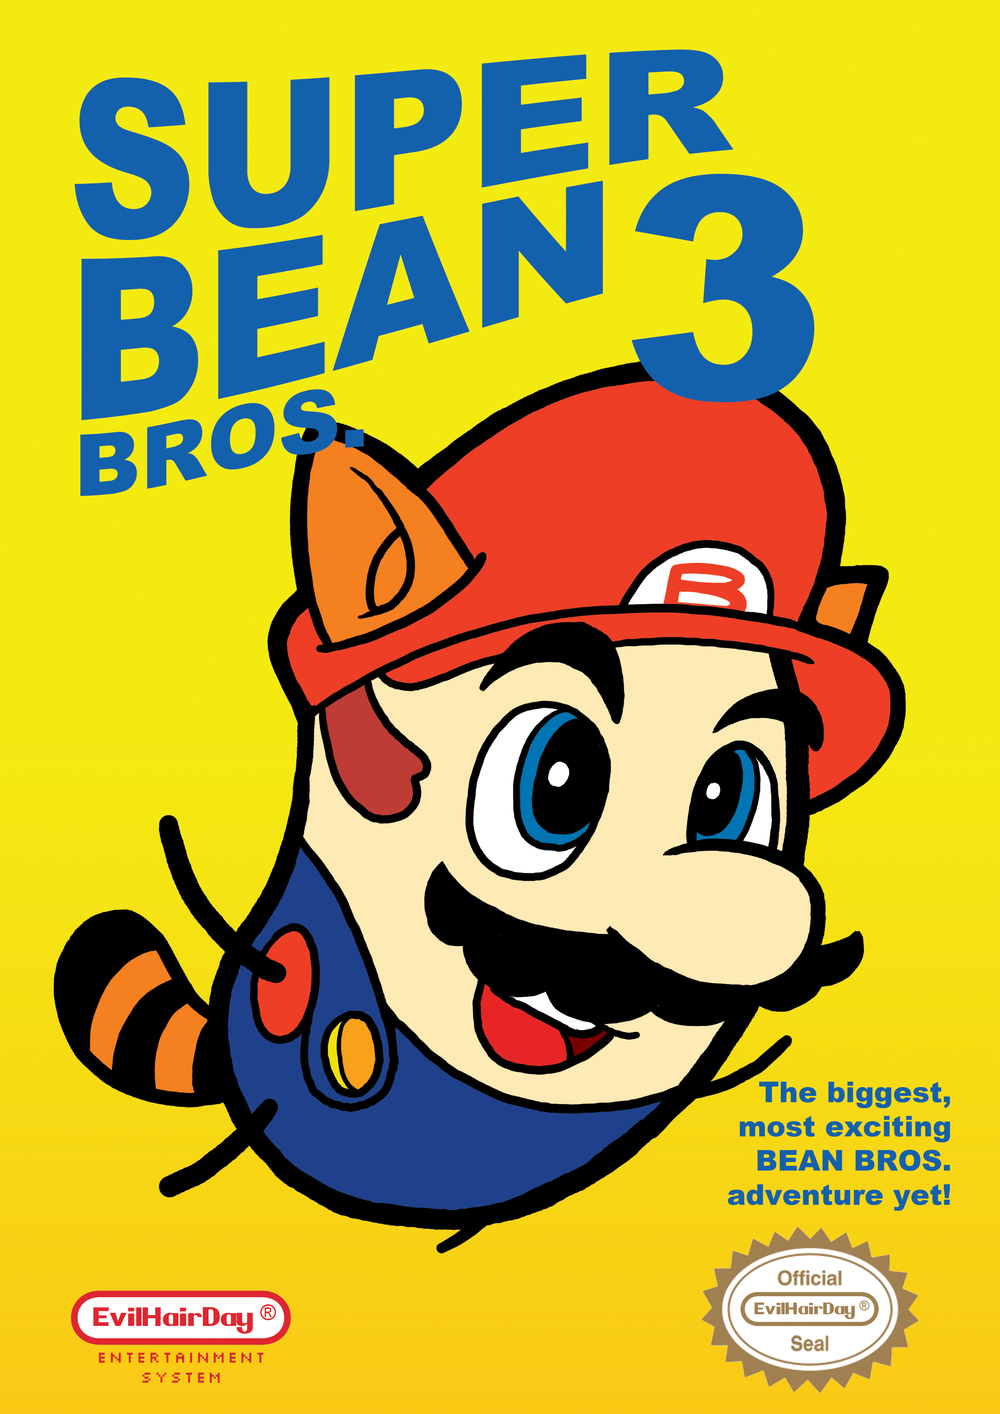 super bean bros 3 poster.jpg